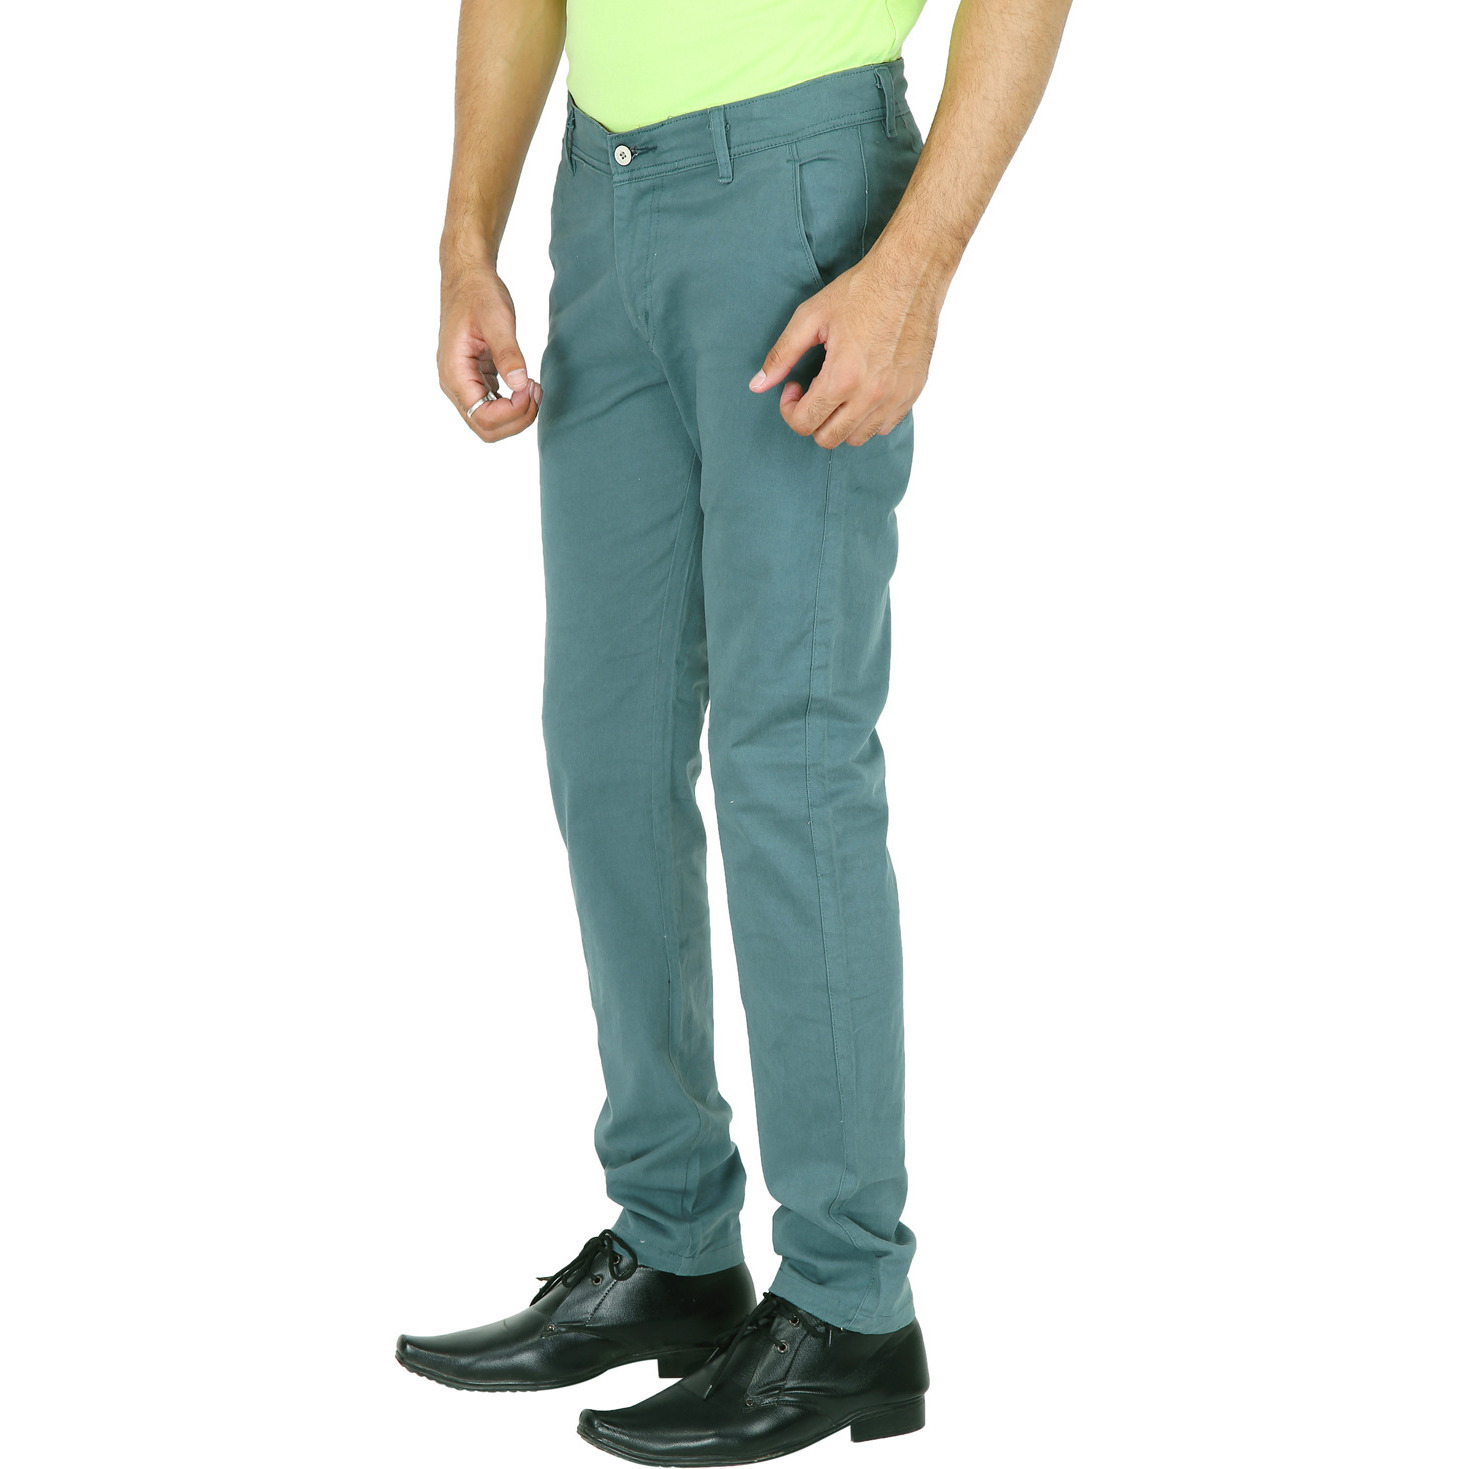 Stallion Green Casual Men's Chinos Trouser by Be You